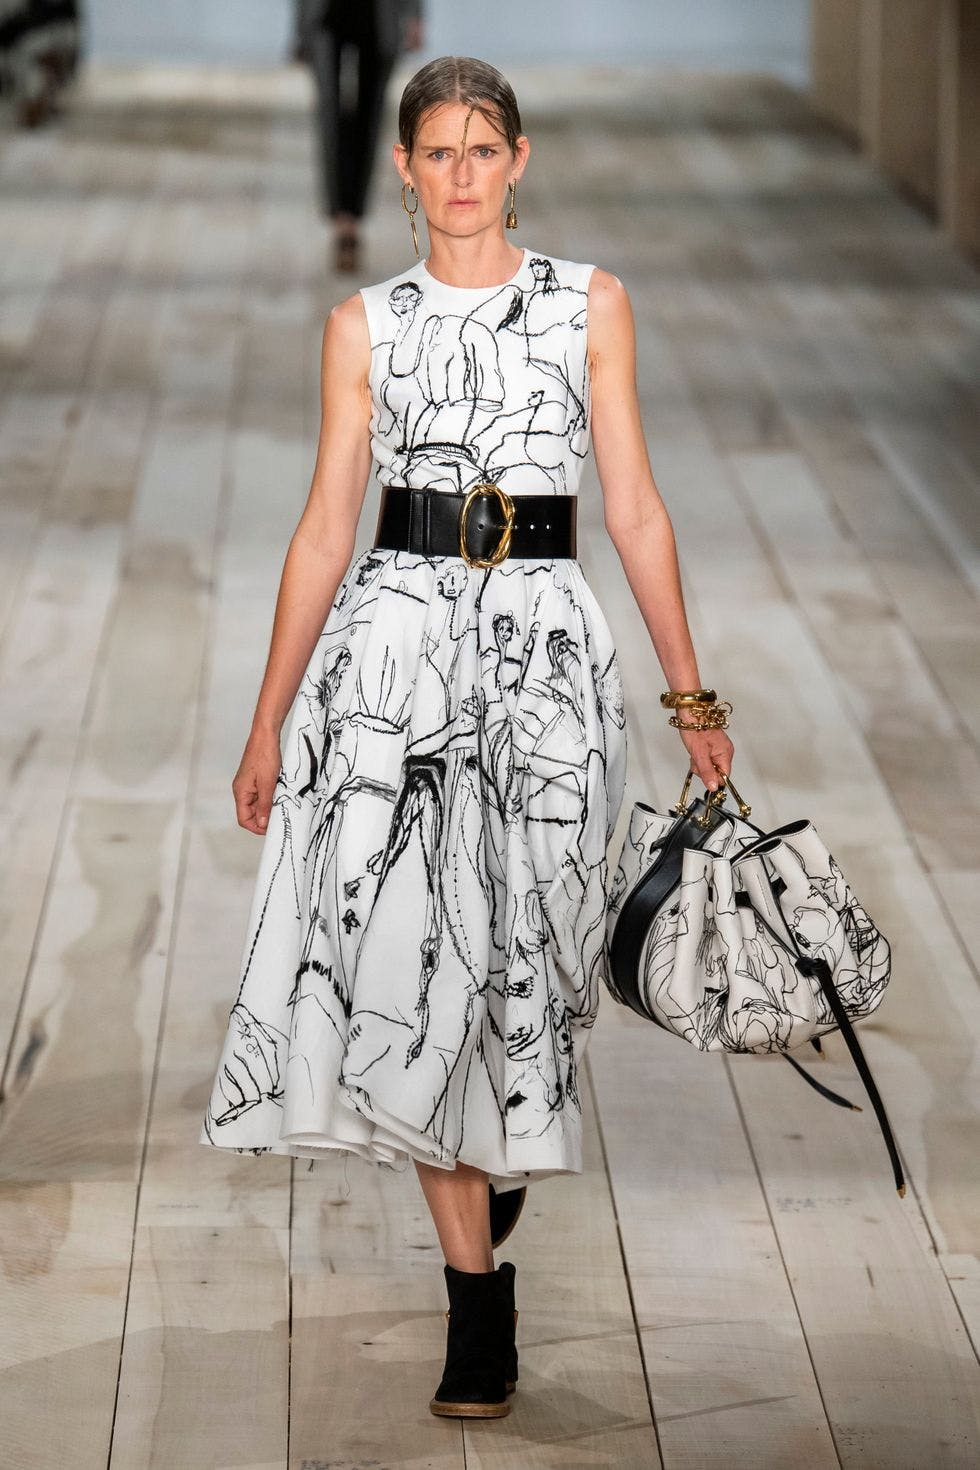 ALEXANDER MCQUEEN BROUGHT LONDON STUDENTS' DRAWINGS TO LIFE